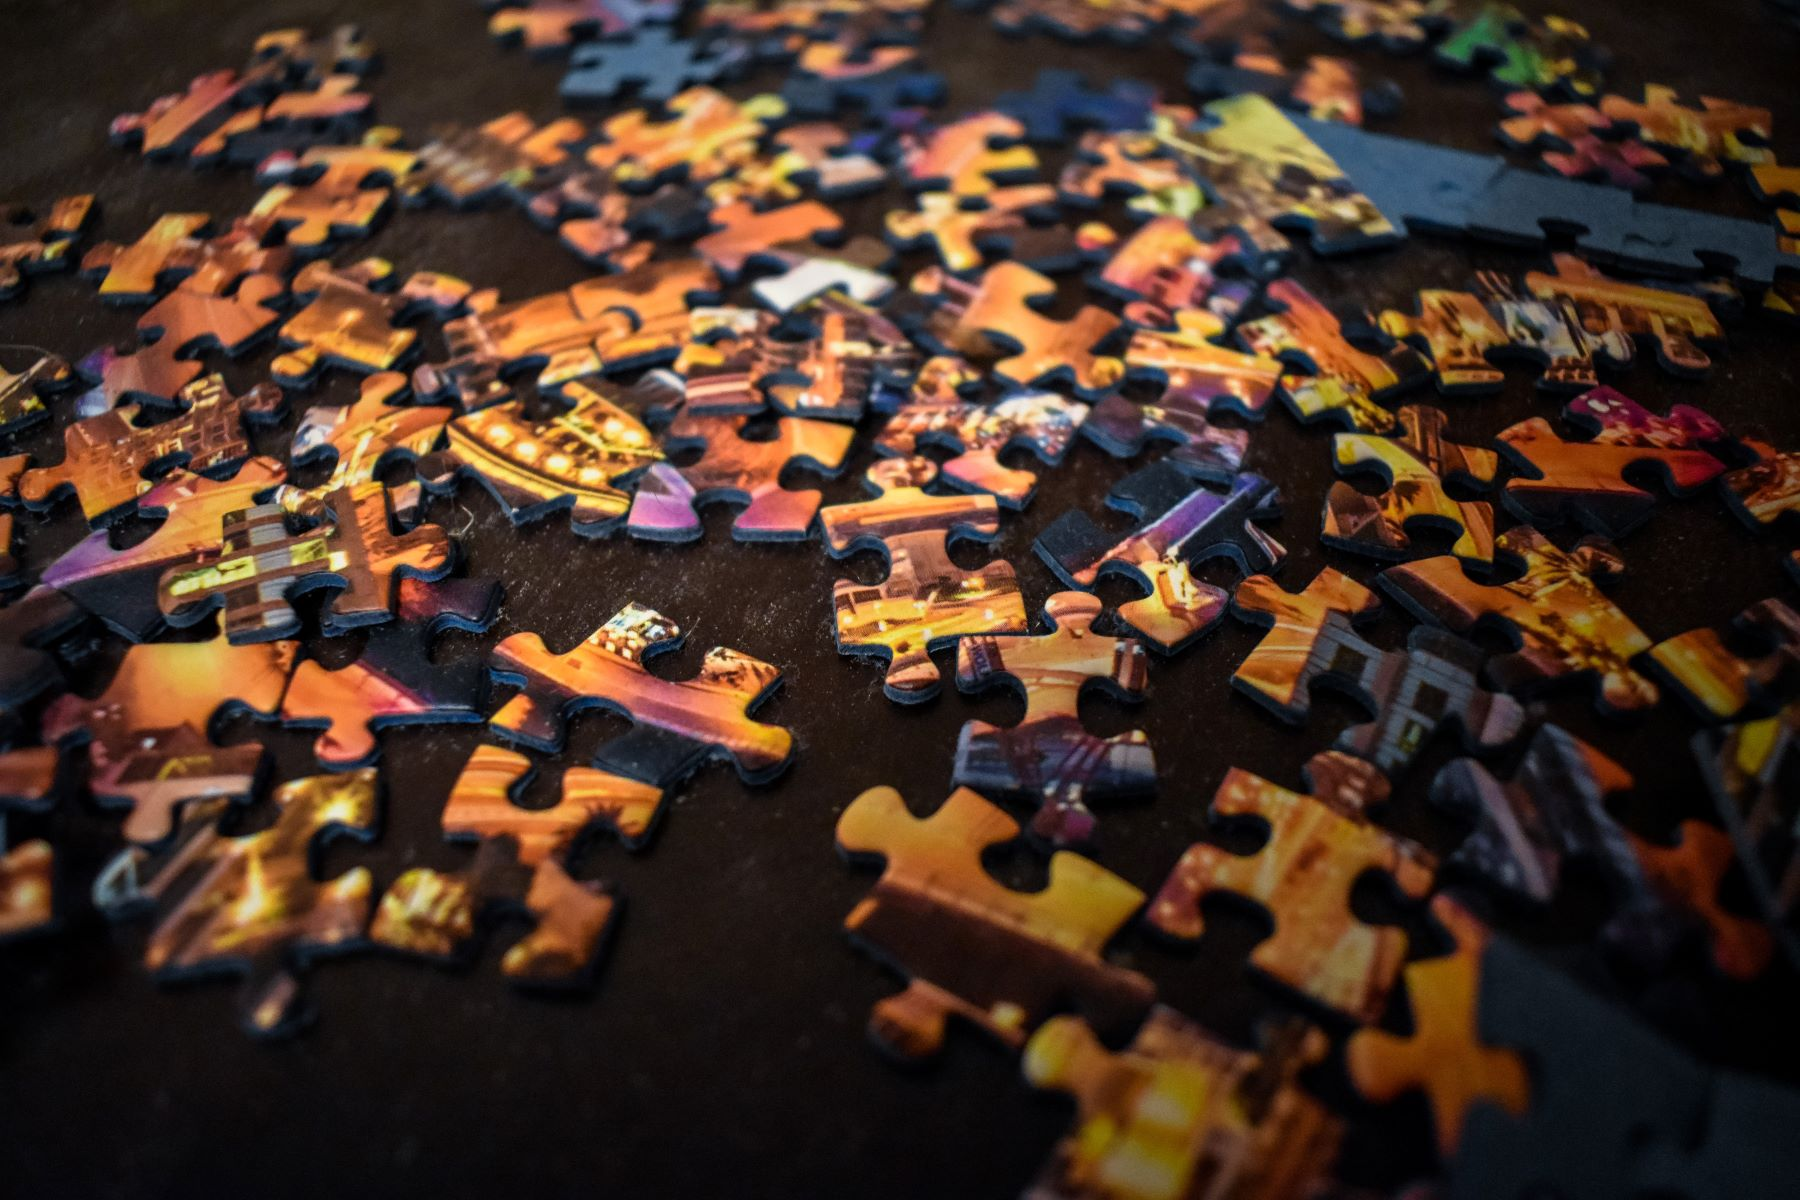 Image of jigsaw pieces waiting to be put together, to represent sales teams working together.